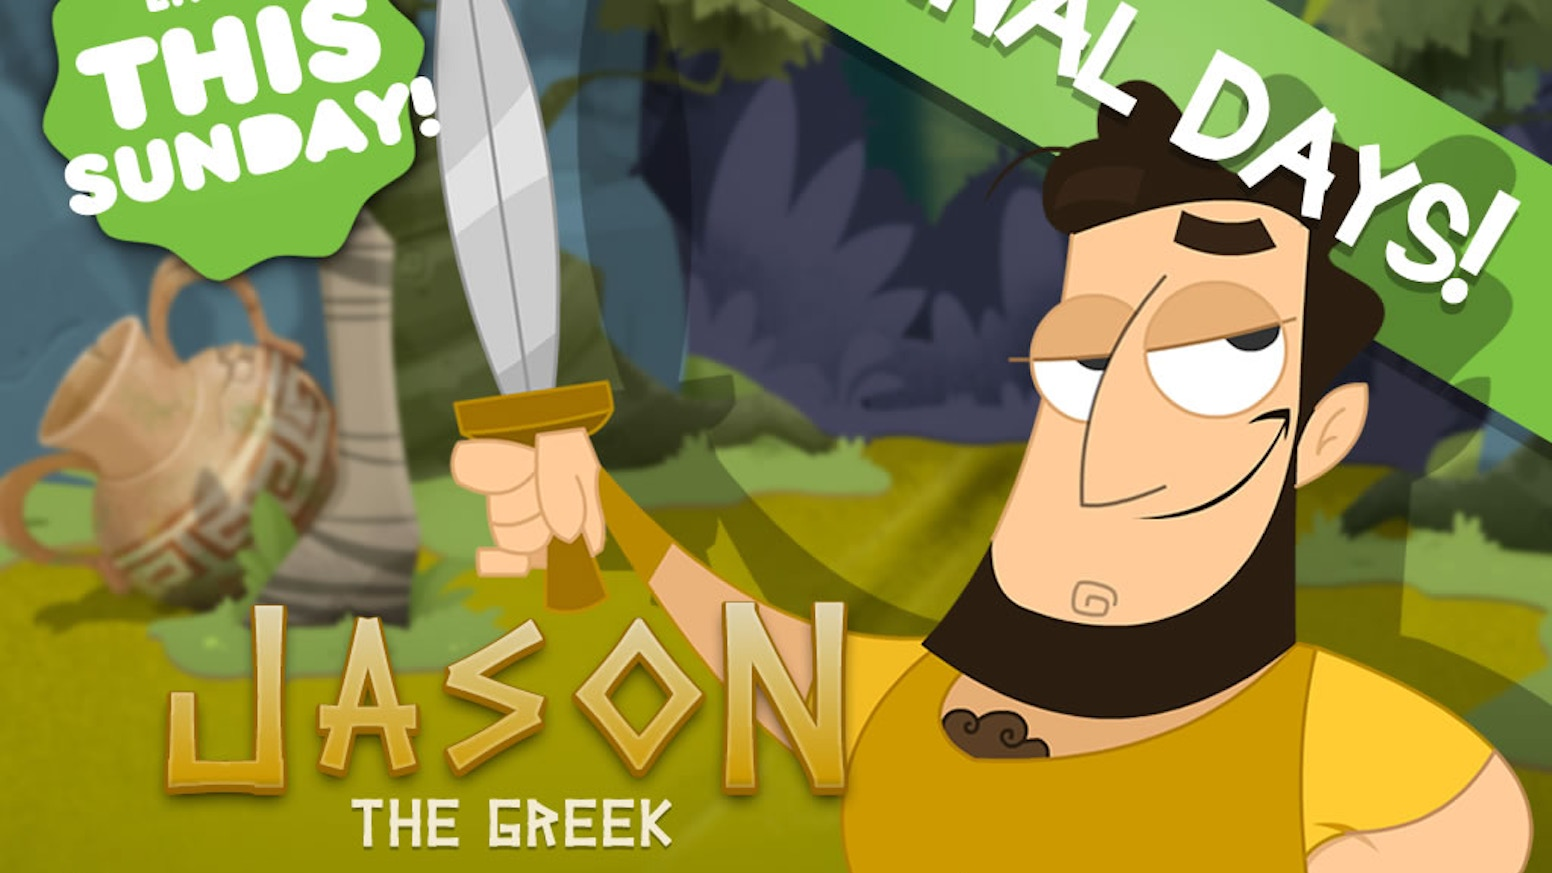 A point and click adventure set in Ancient Greece? You'd FETA believe it! It's Jason and The Argonauts meets Captain Kirk!